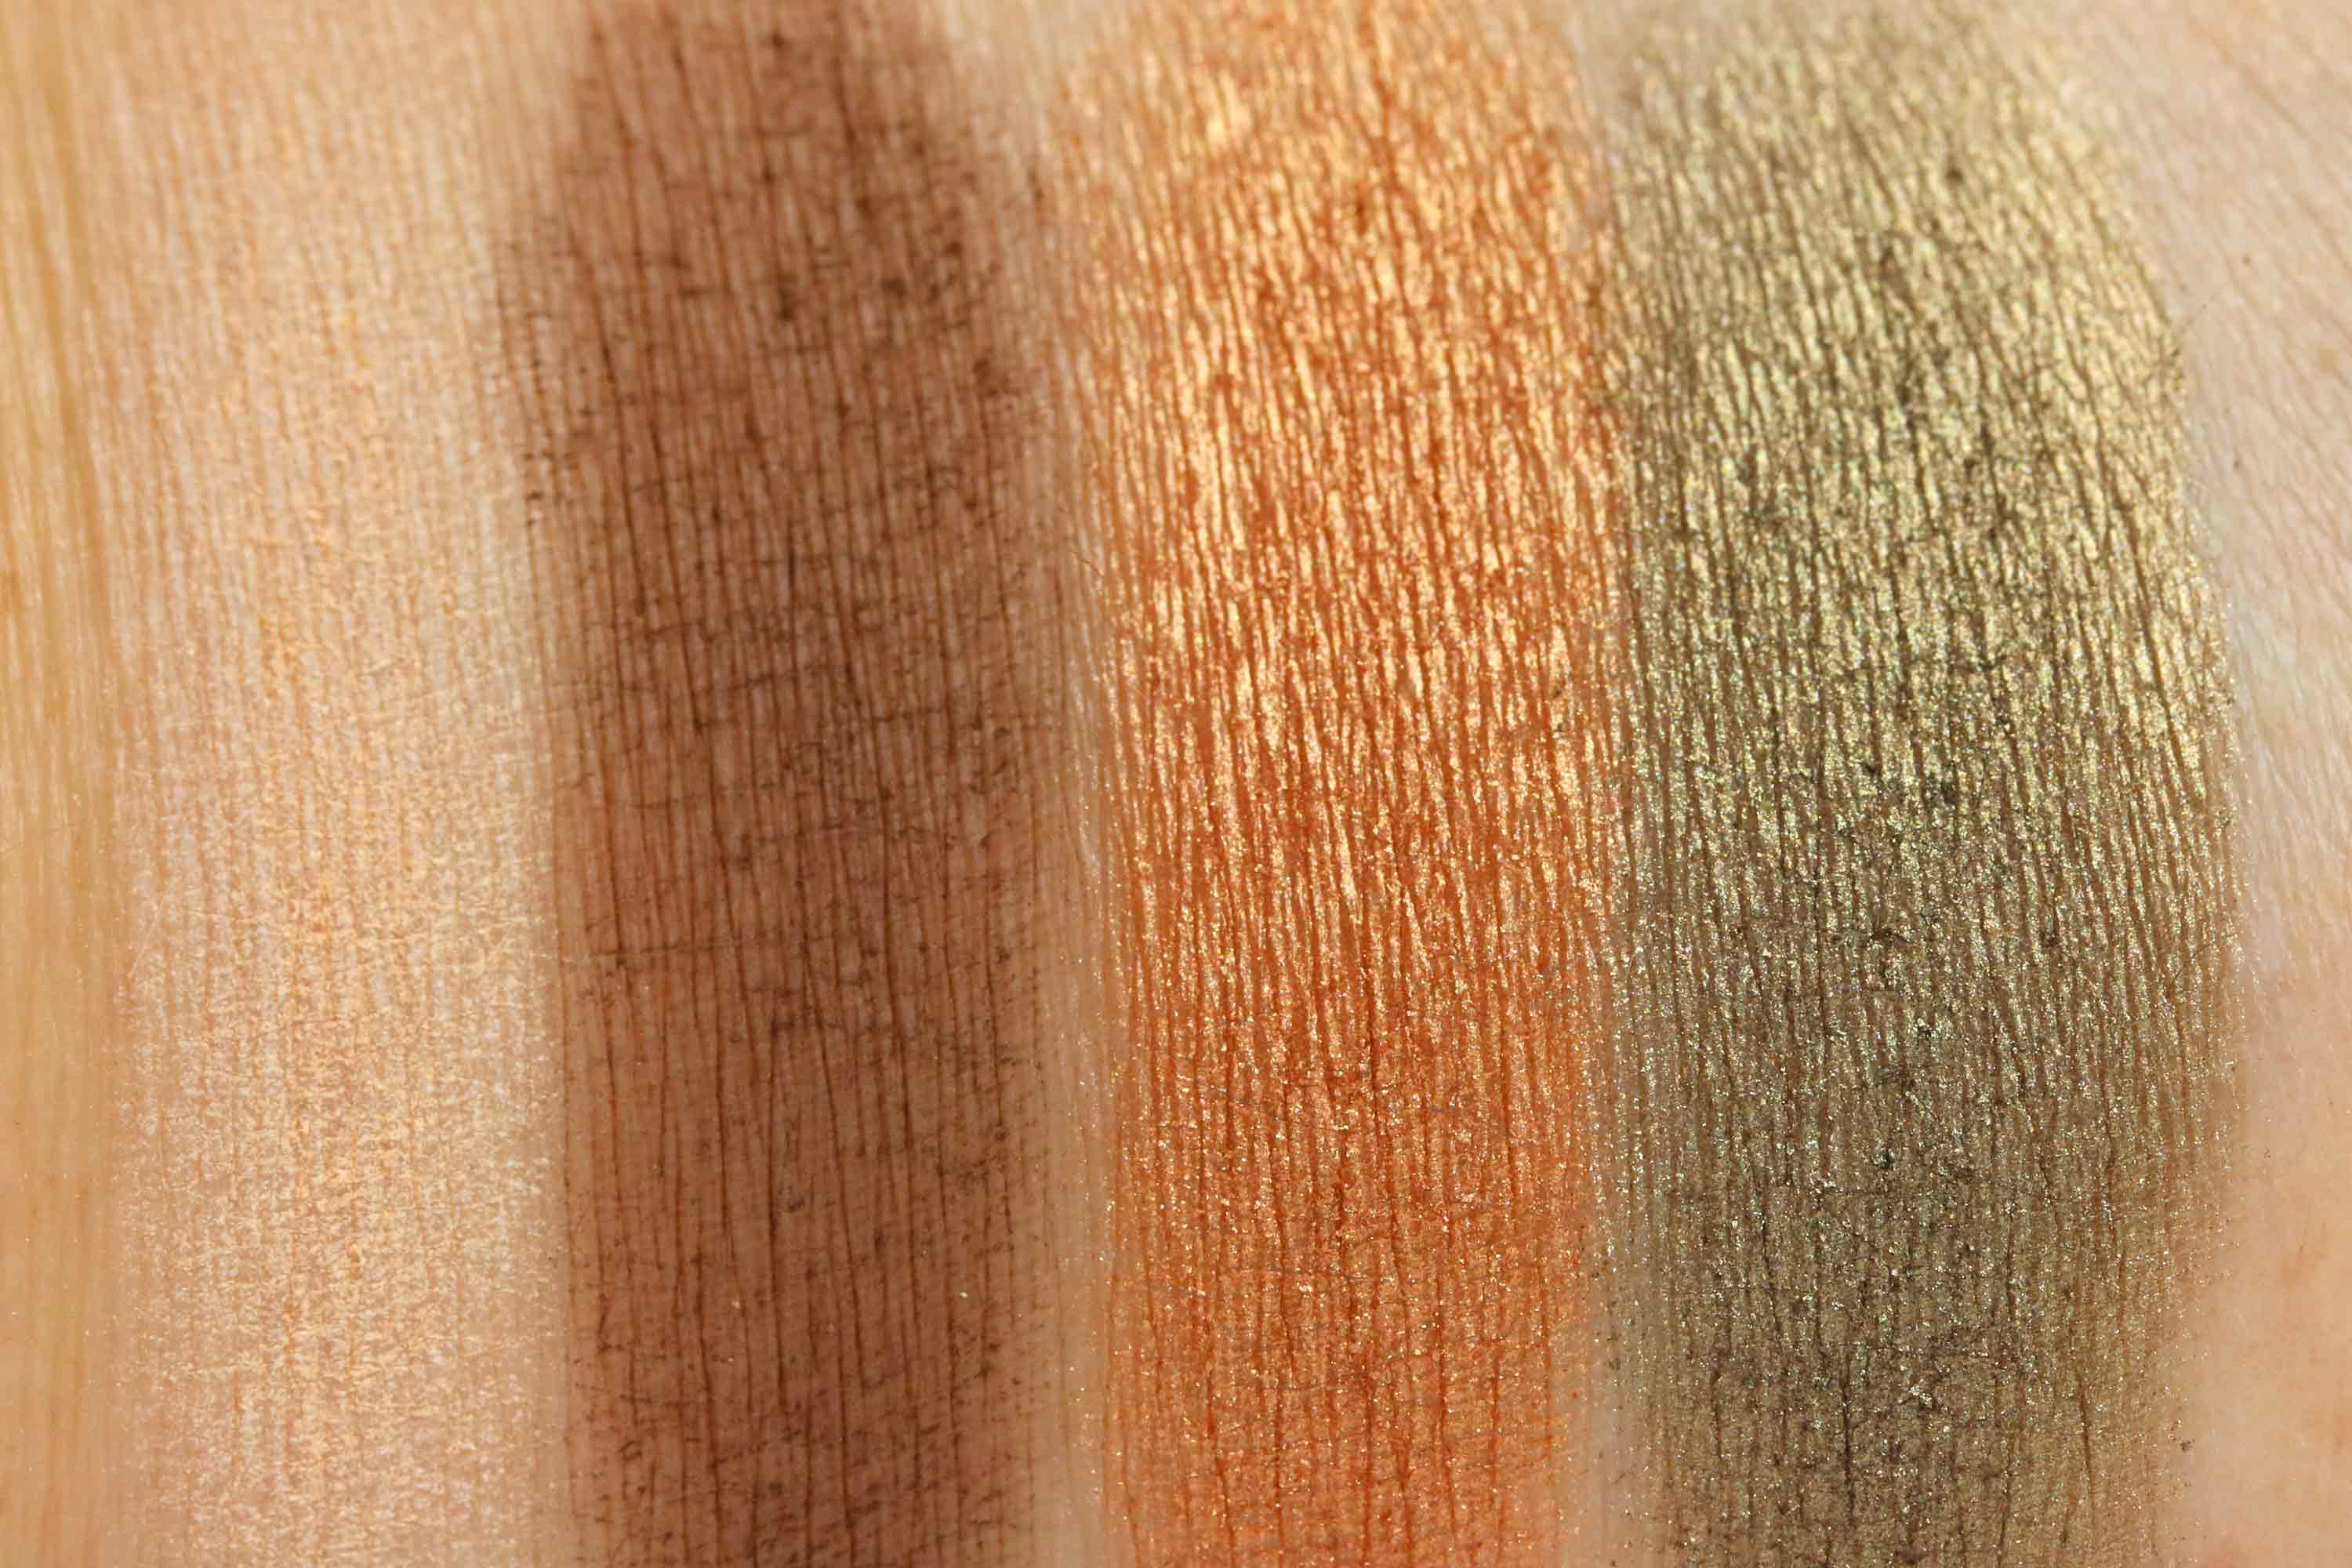 nyx-lidschatten-04-easy-on-the-eyes-swatches